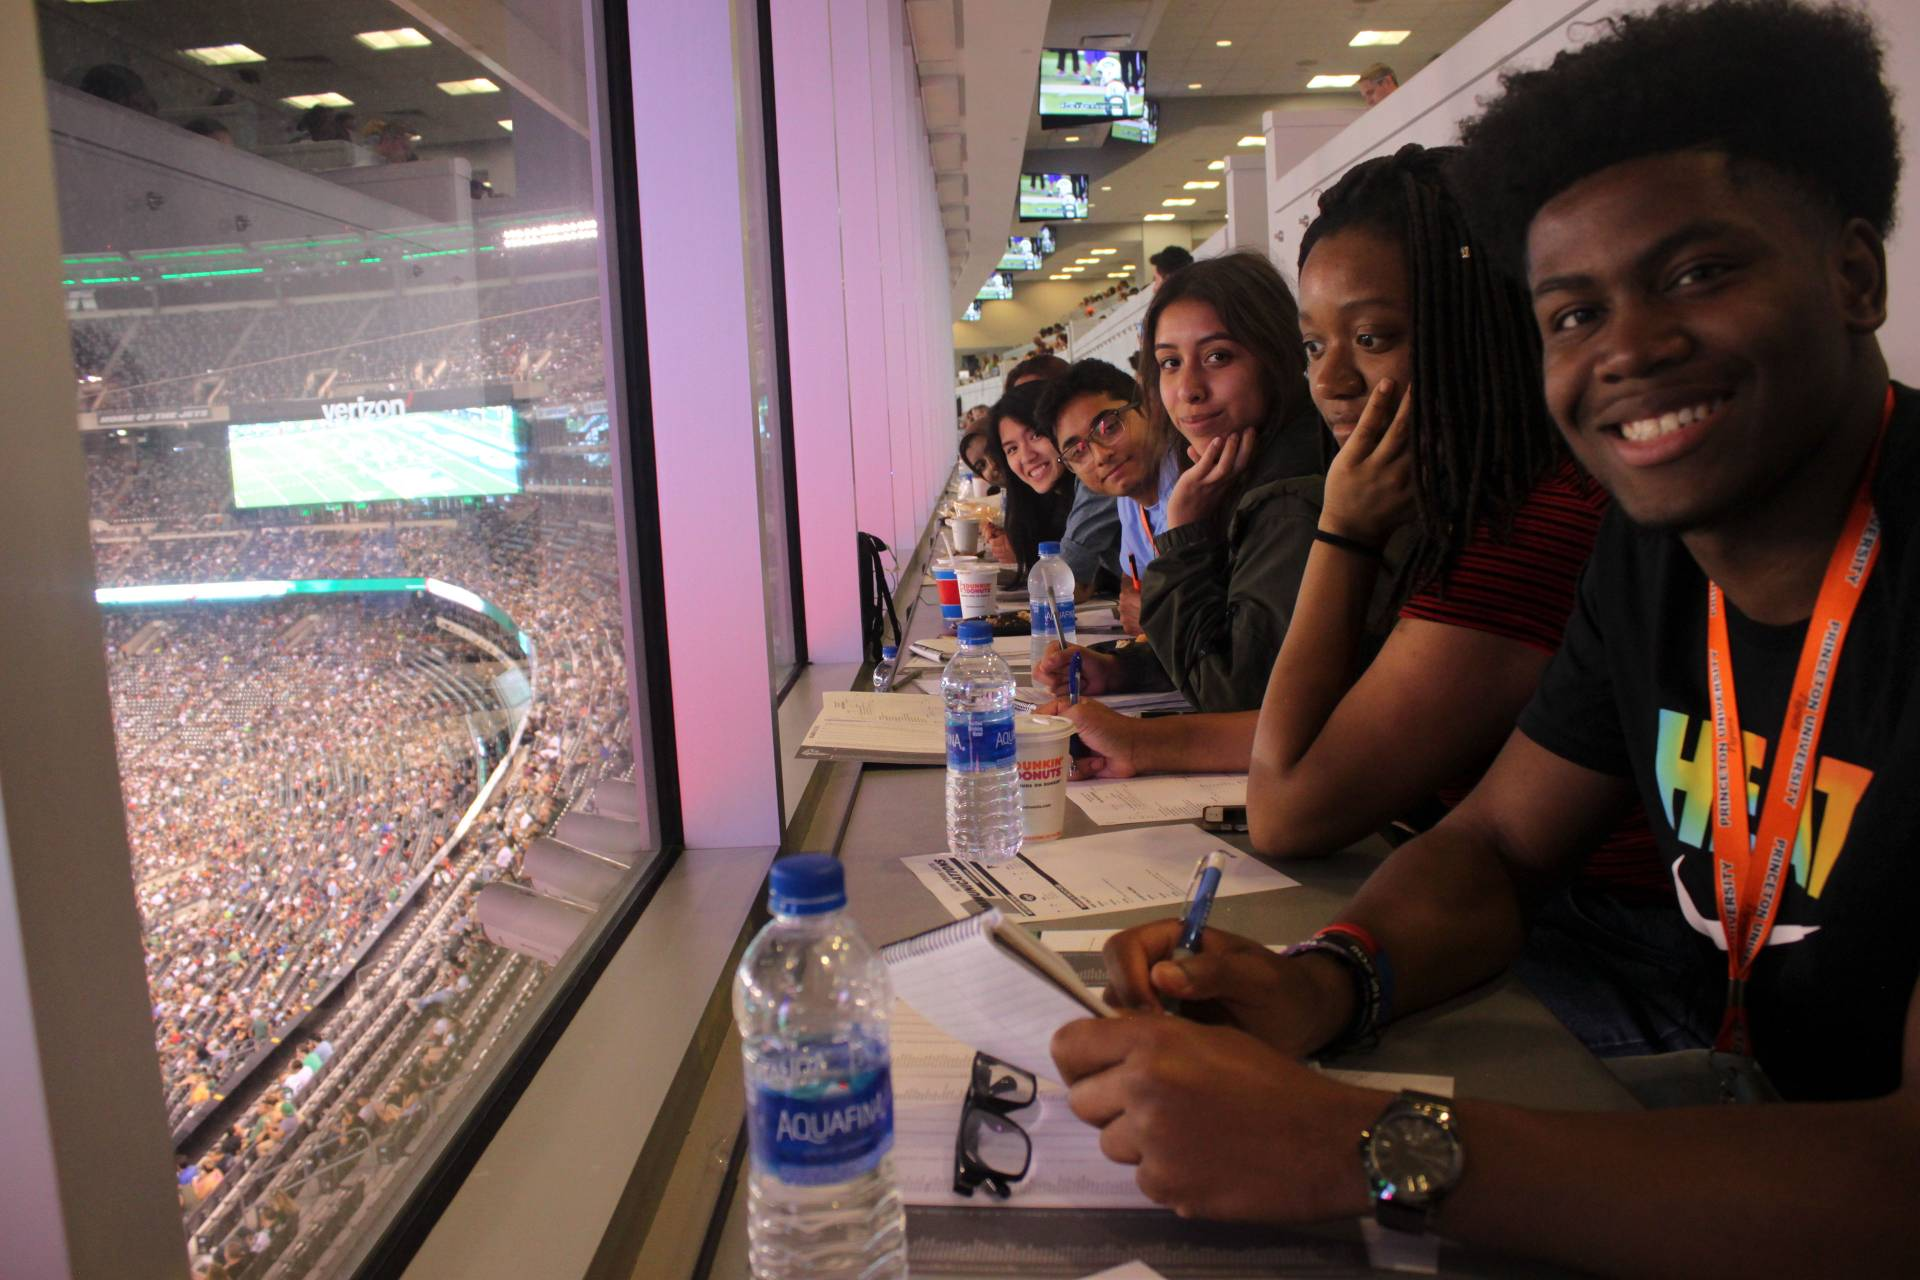 Summer Journalism Program students in press box during Jets football game